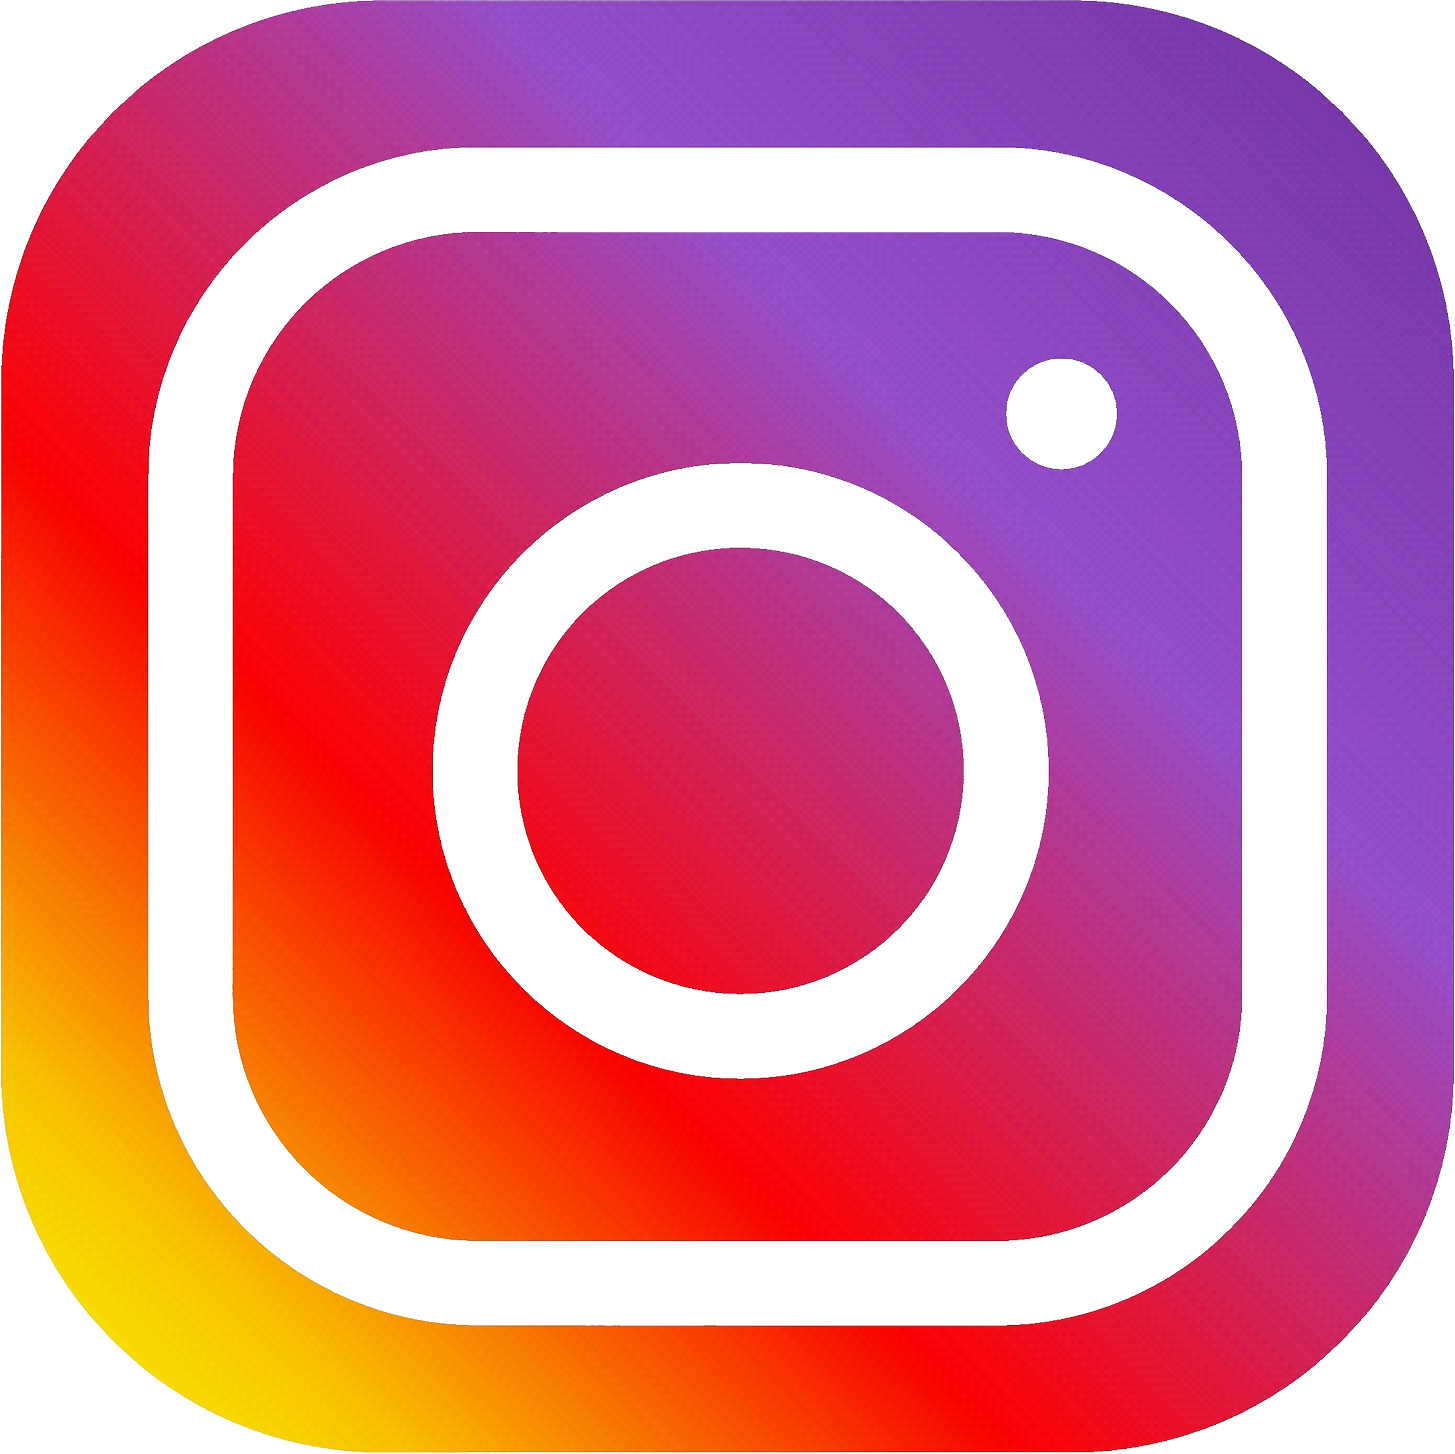 File:Instagram-Icon.png - Wikimedia Commons